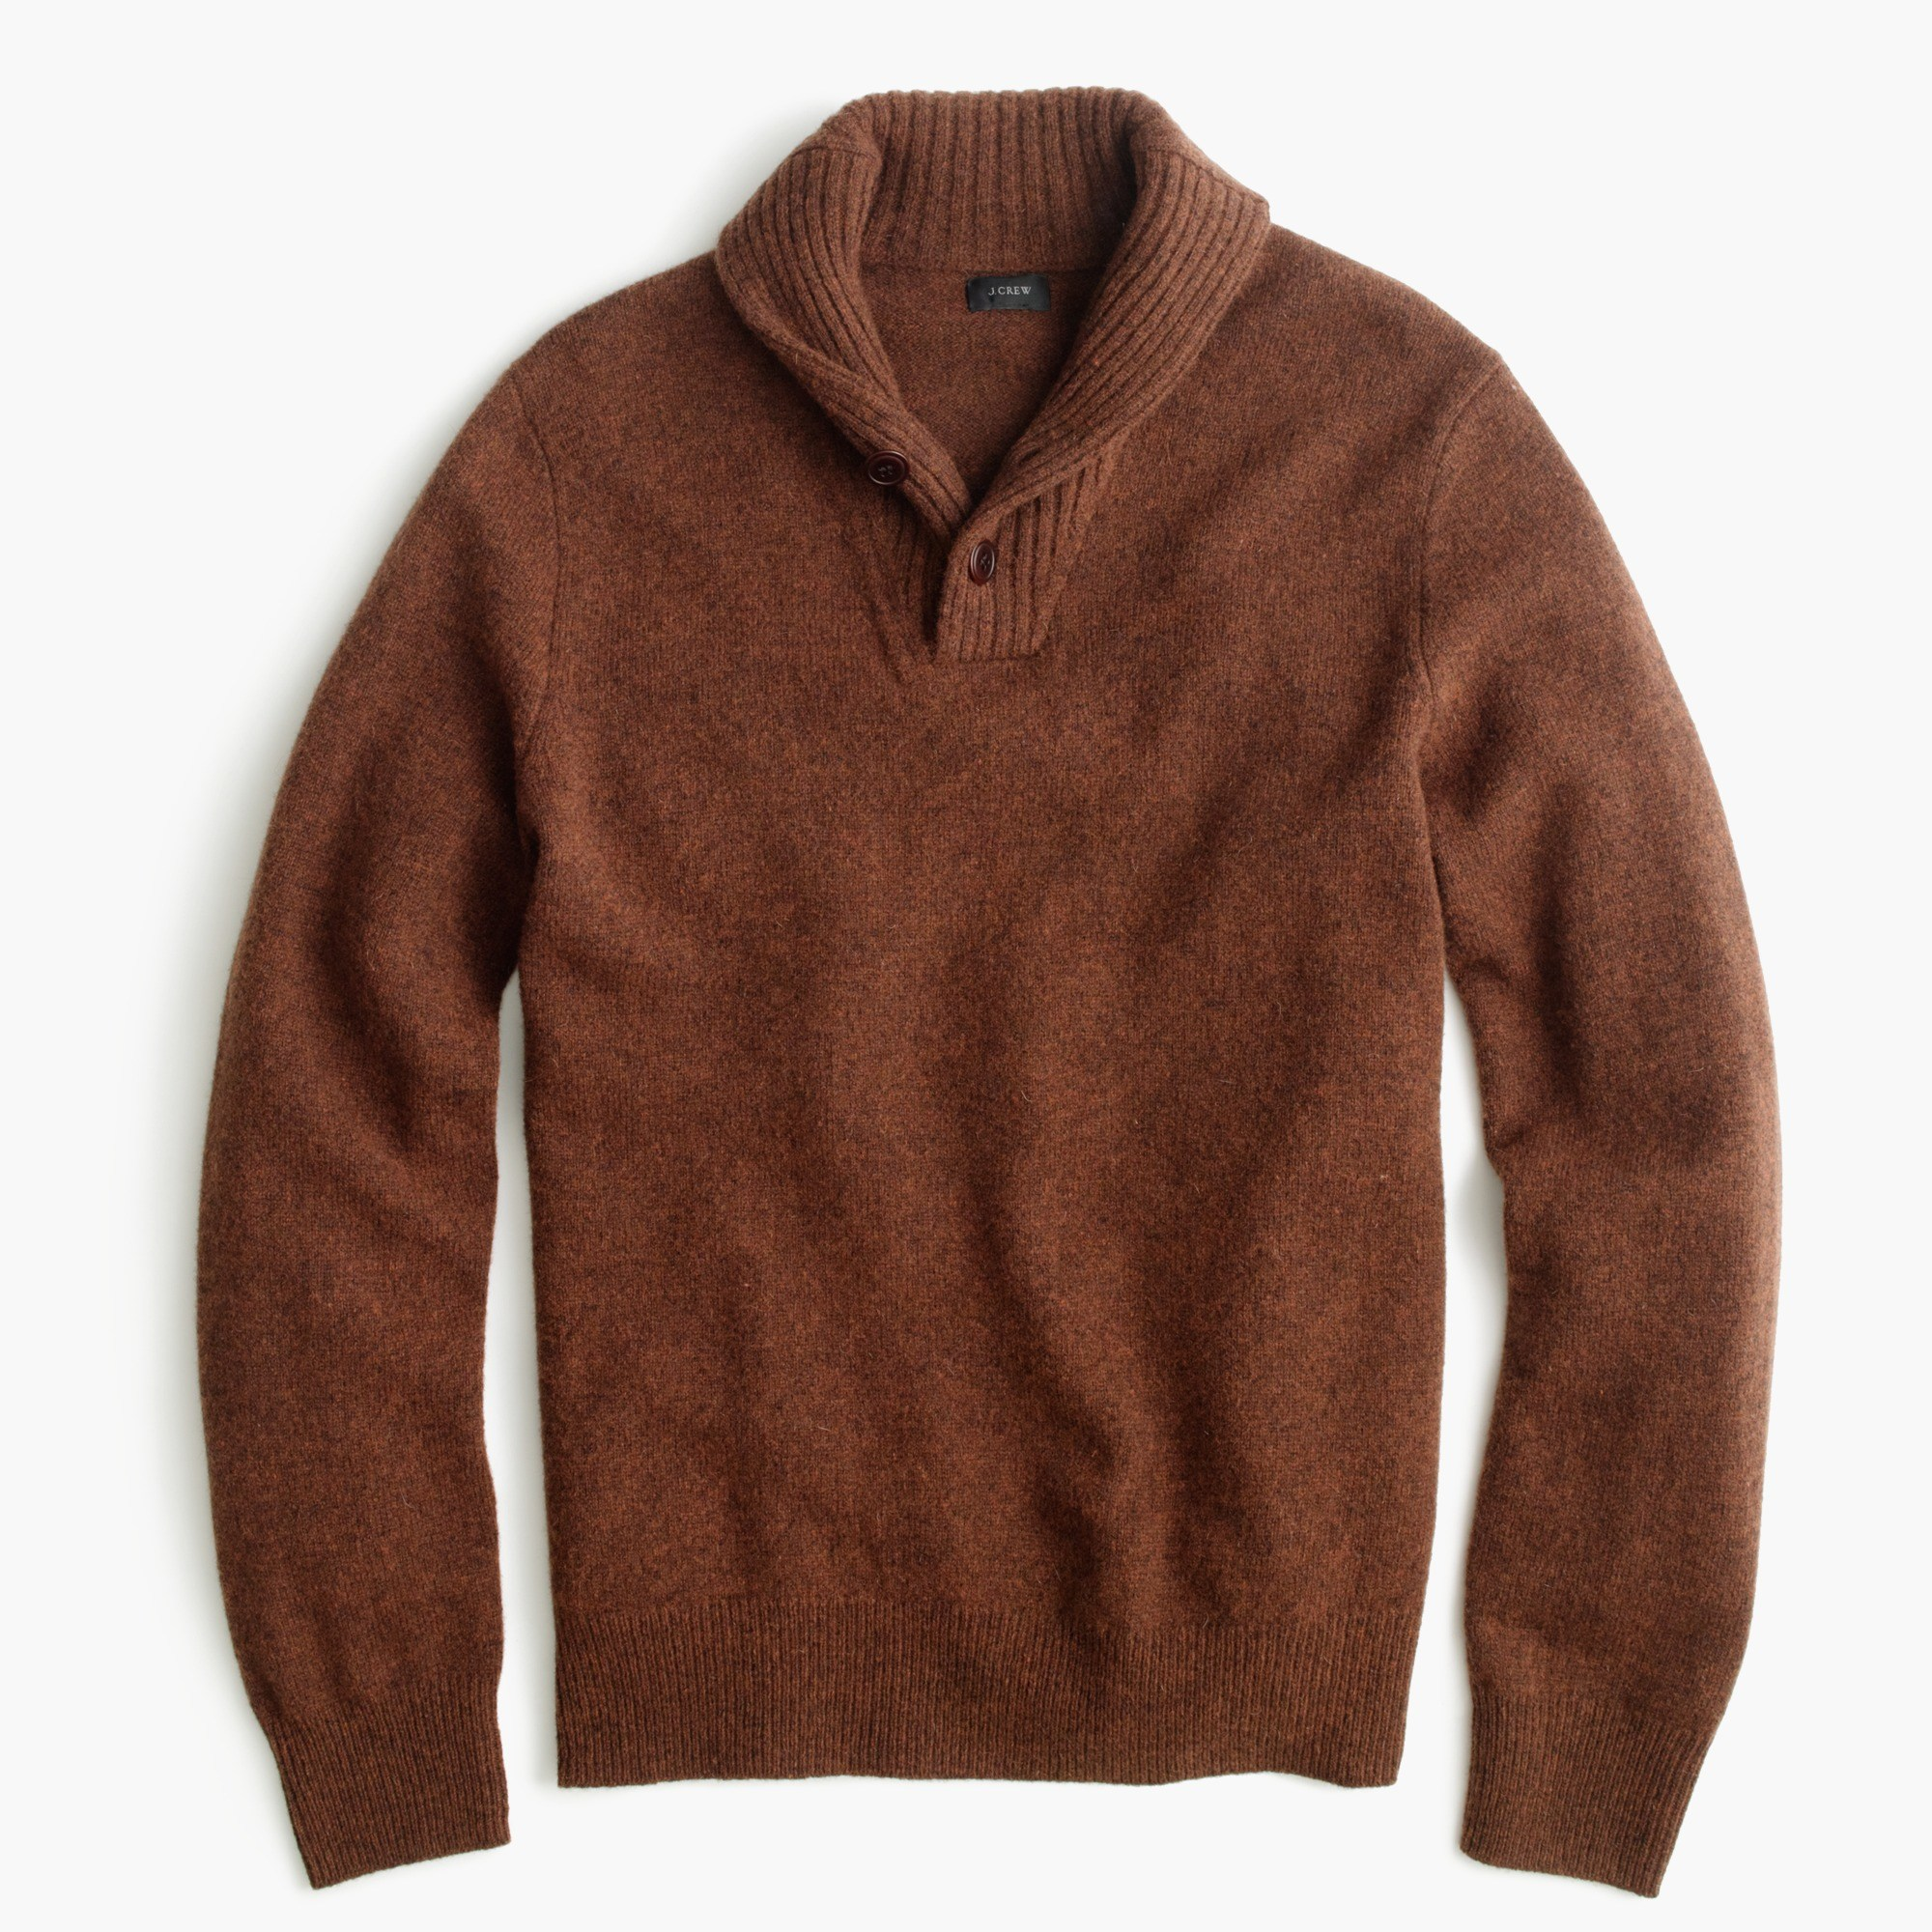 Lambswool Shawl-Collar Sweater : Men's Sweaters | J.Crew